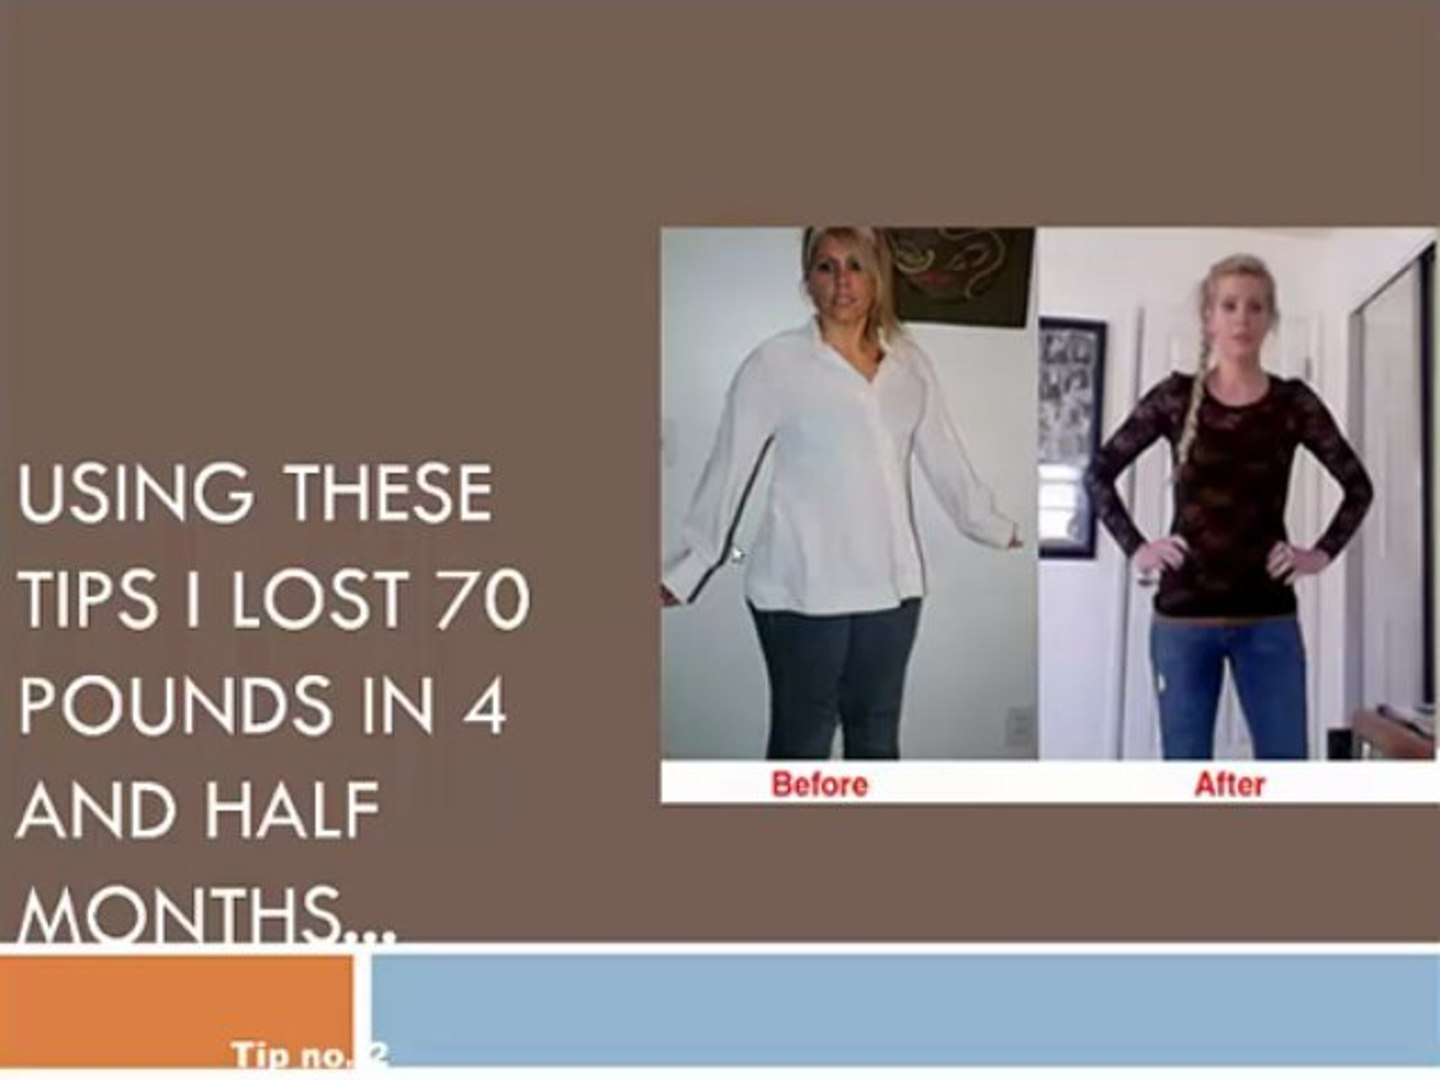 How to lose 70 pounds tip 2 just create a daily routine